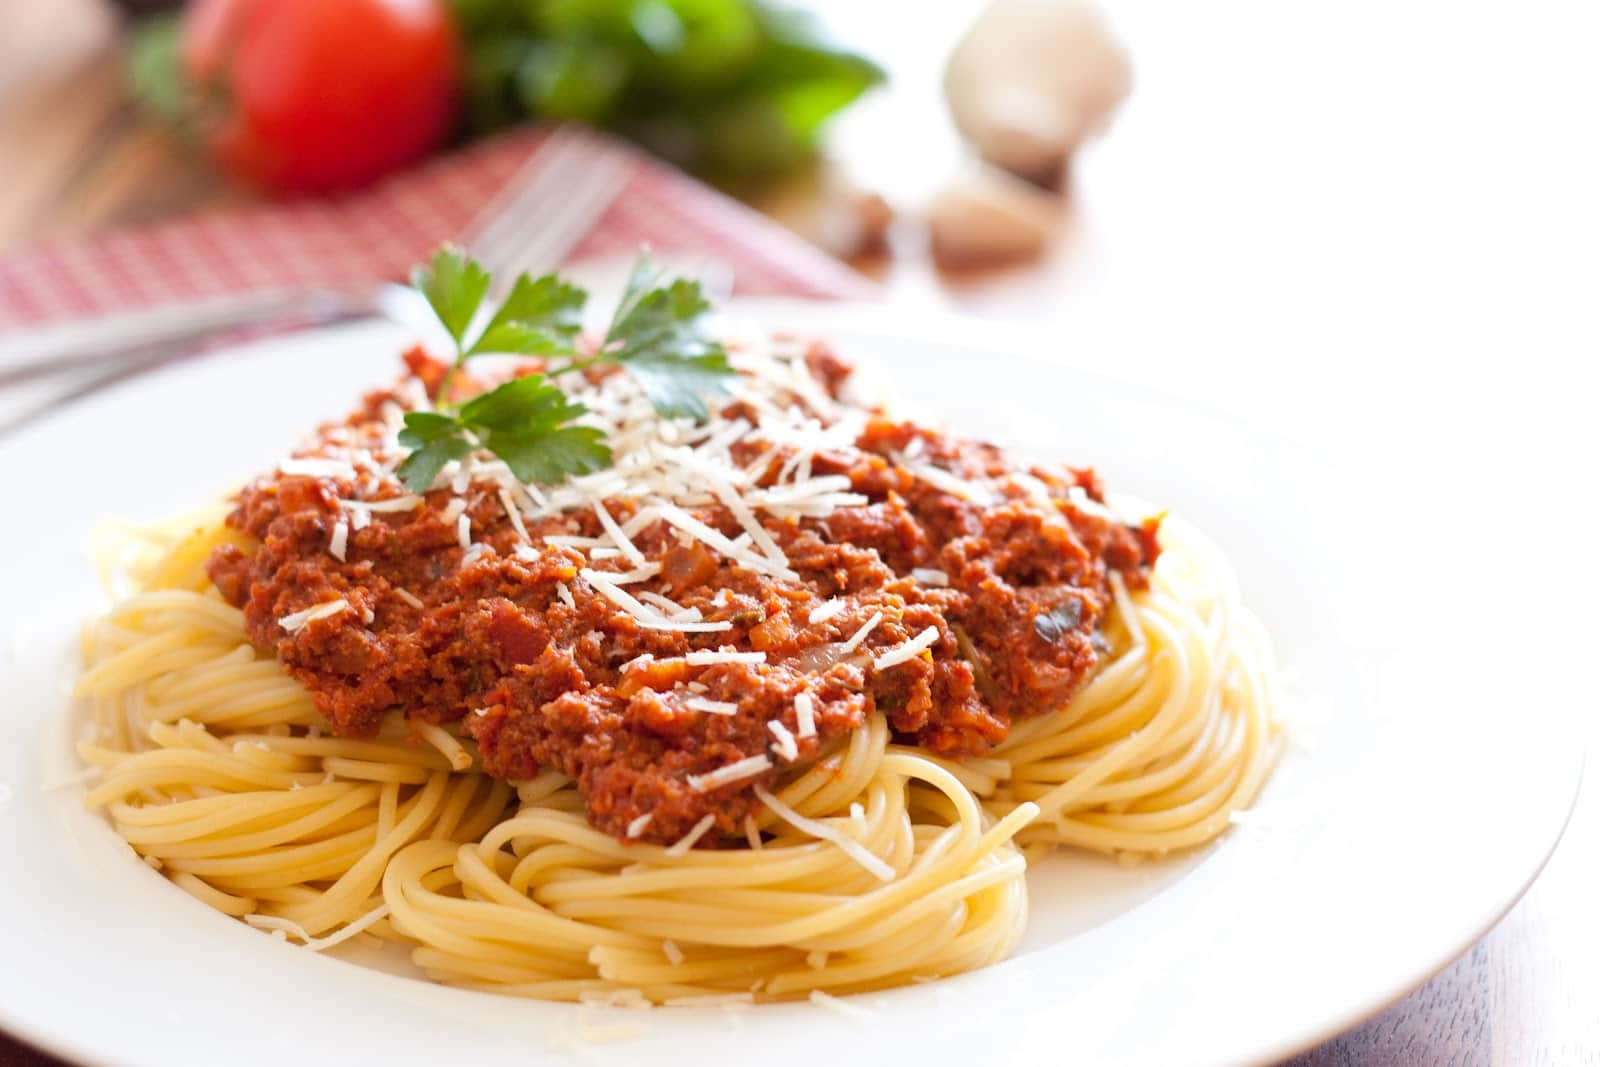 Spaghetti with Meat Sauce - Authentic Italian Style - Cooking Classy